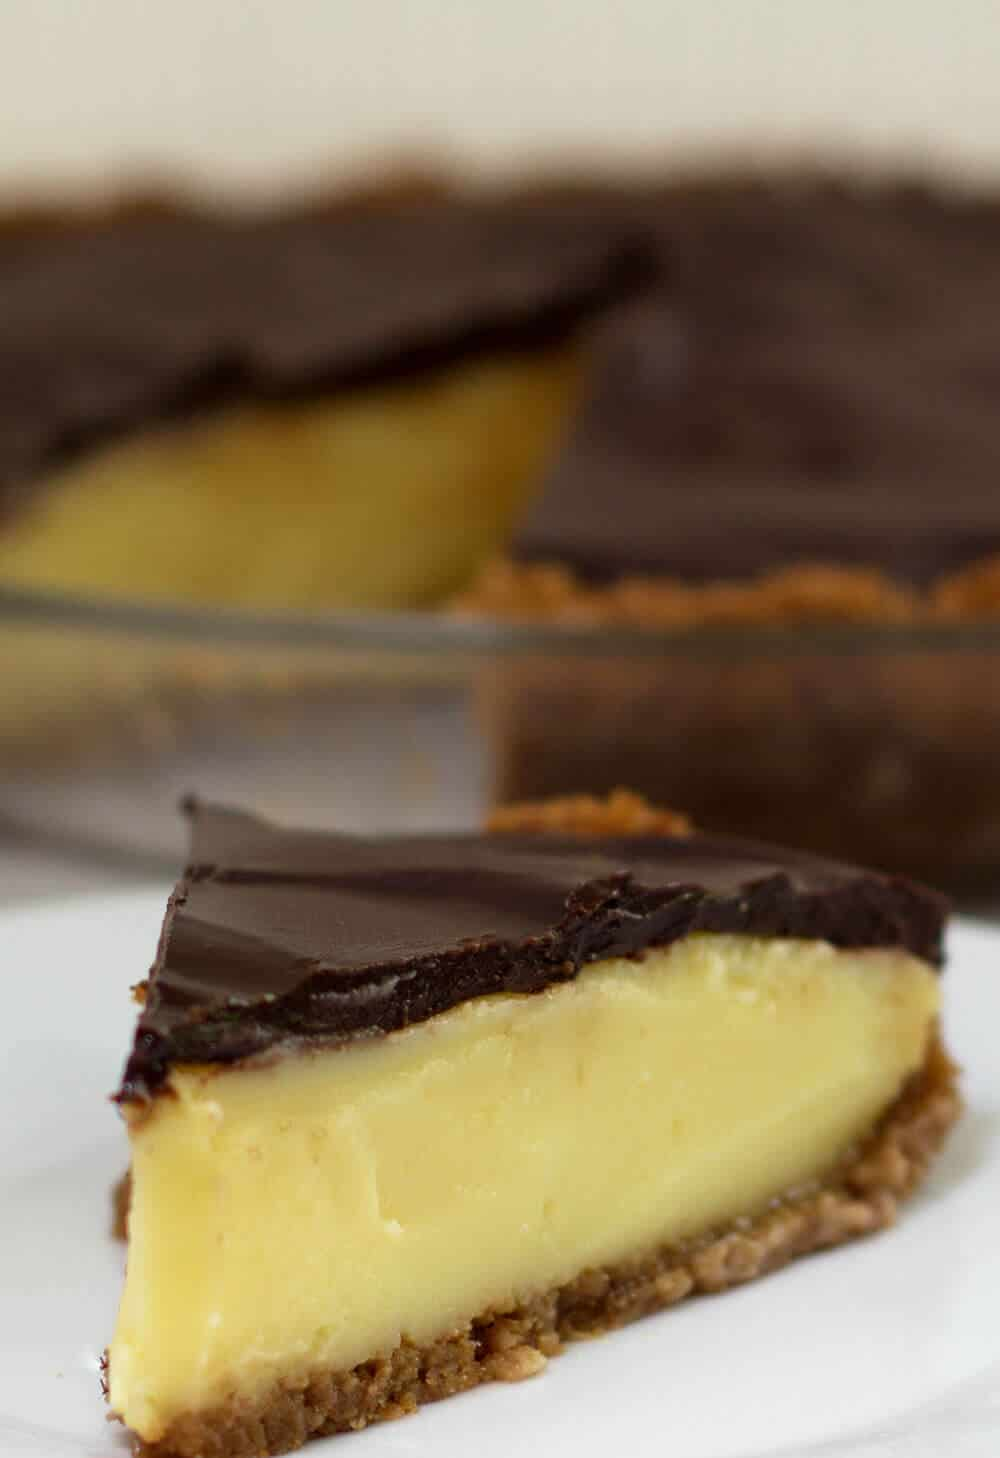 Boston Cream Pie reinvented as true pie, cuts beautifully when well chilled.